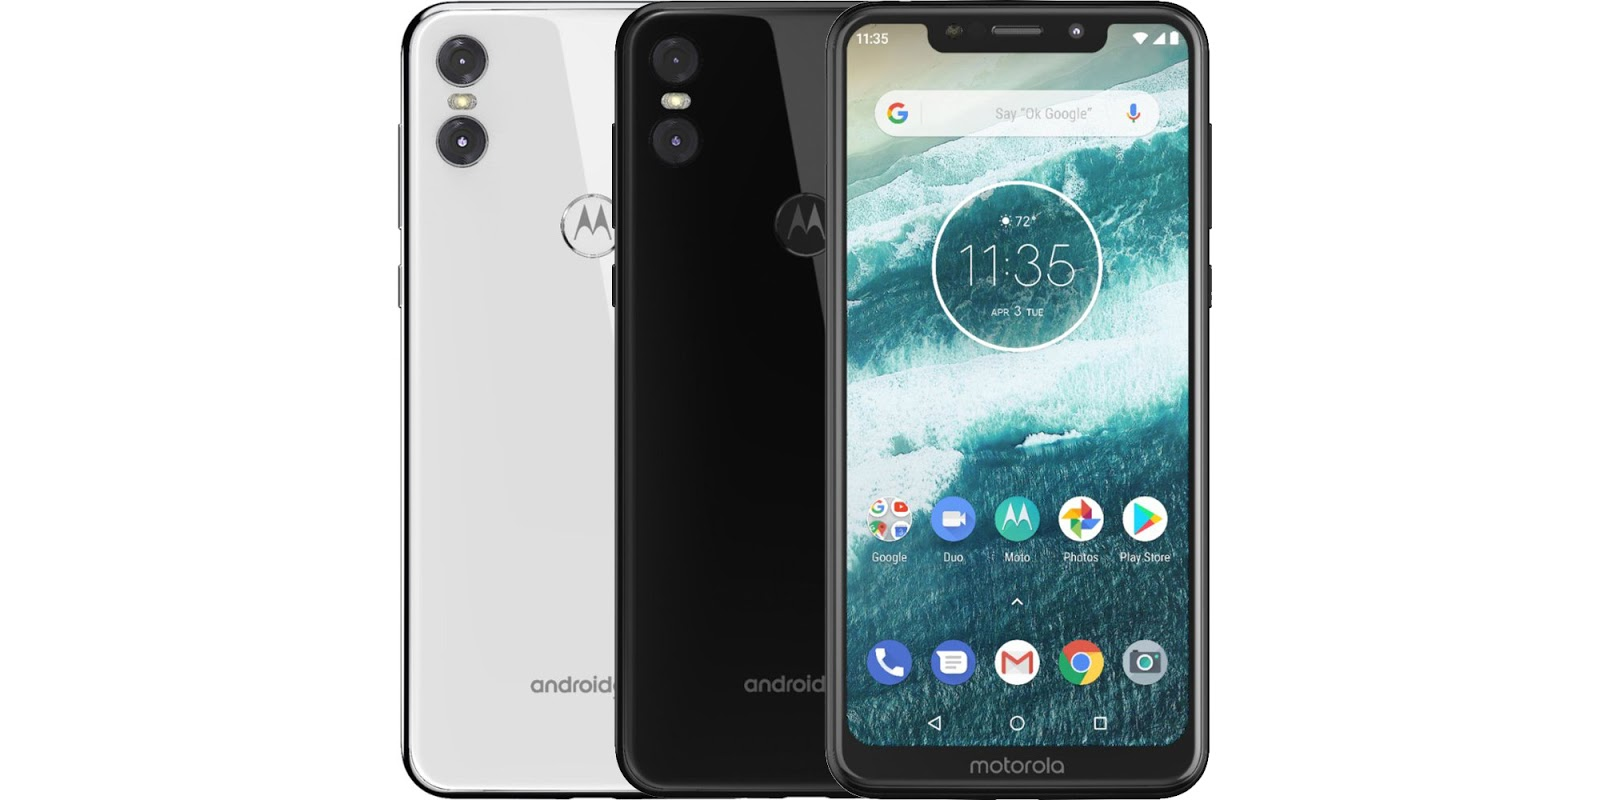 Motorola One receives Android Pie software update